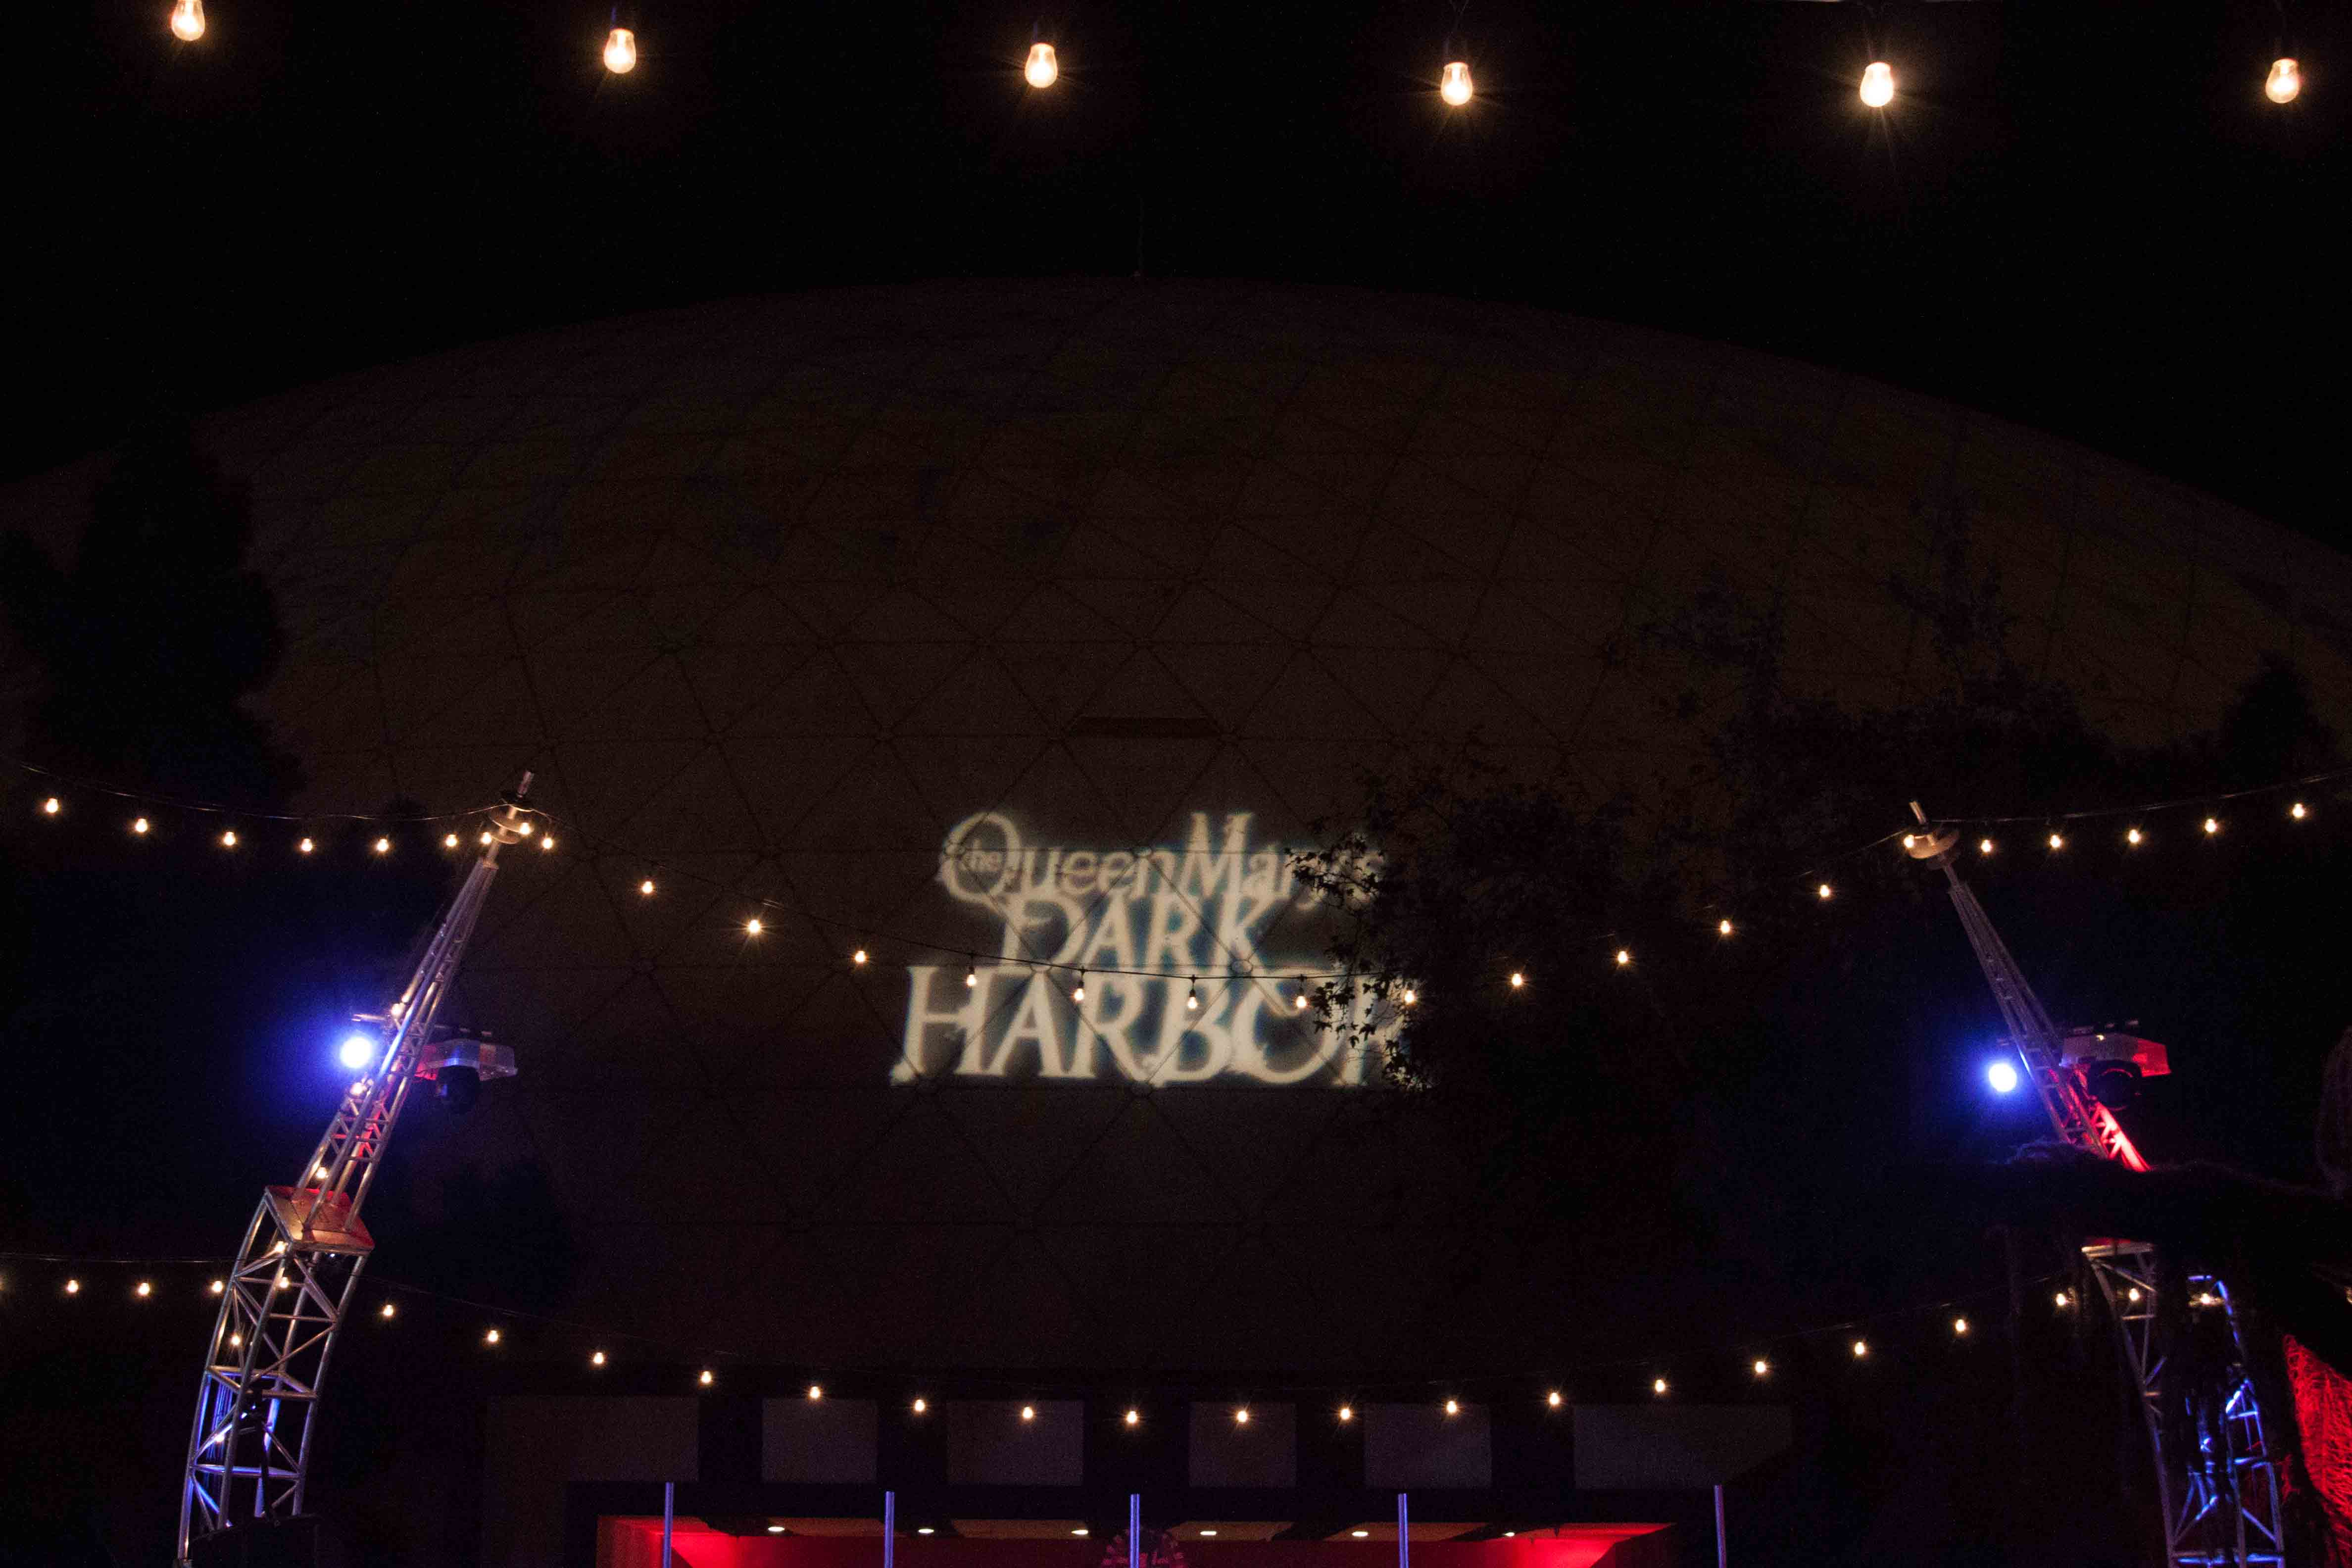 haunt review: queen mary's dark harbor 2014 – scare zone™